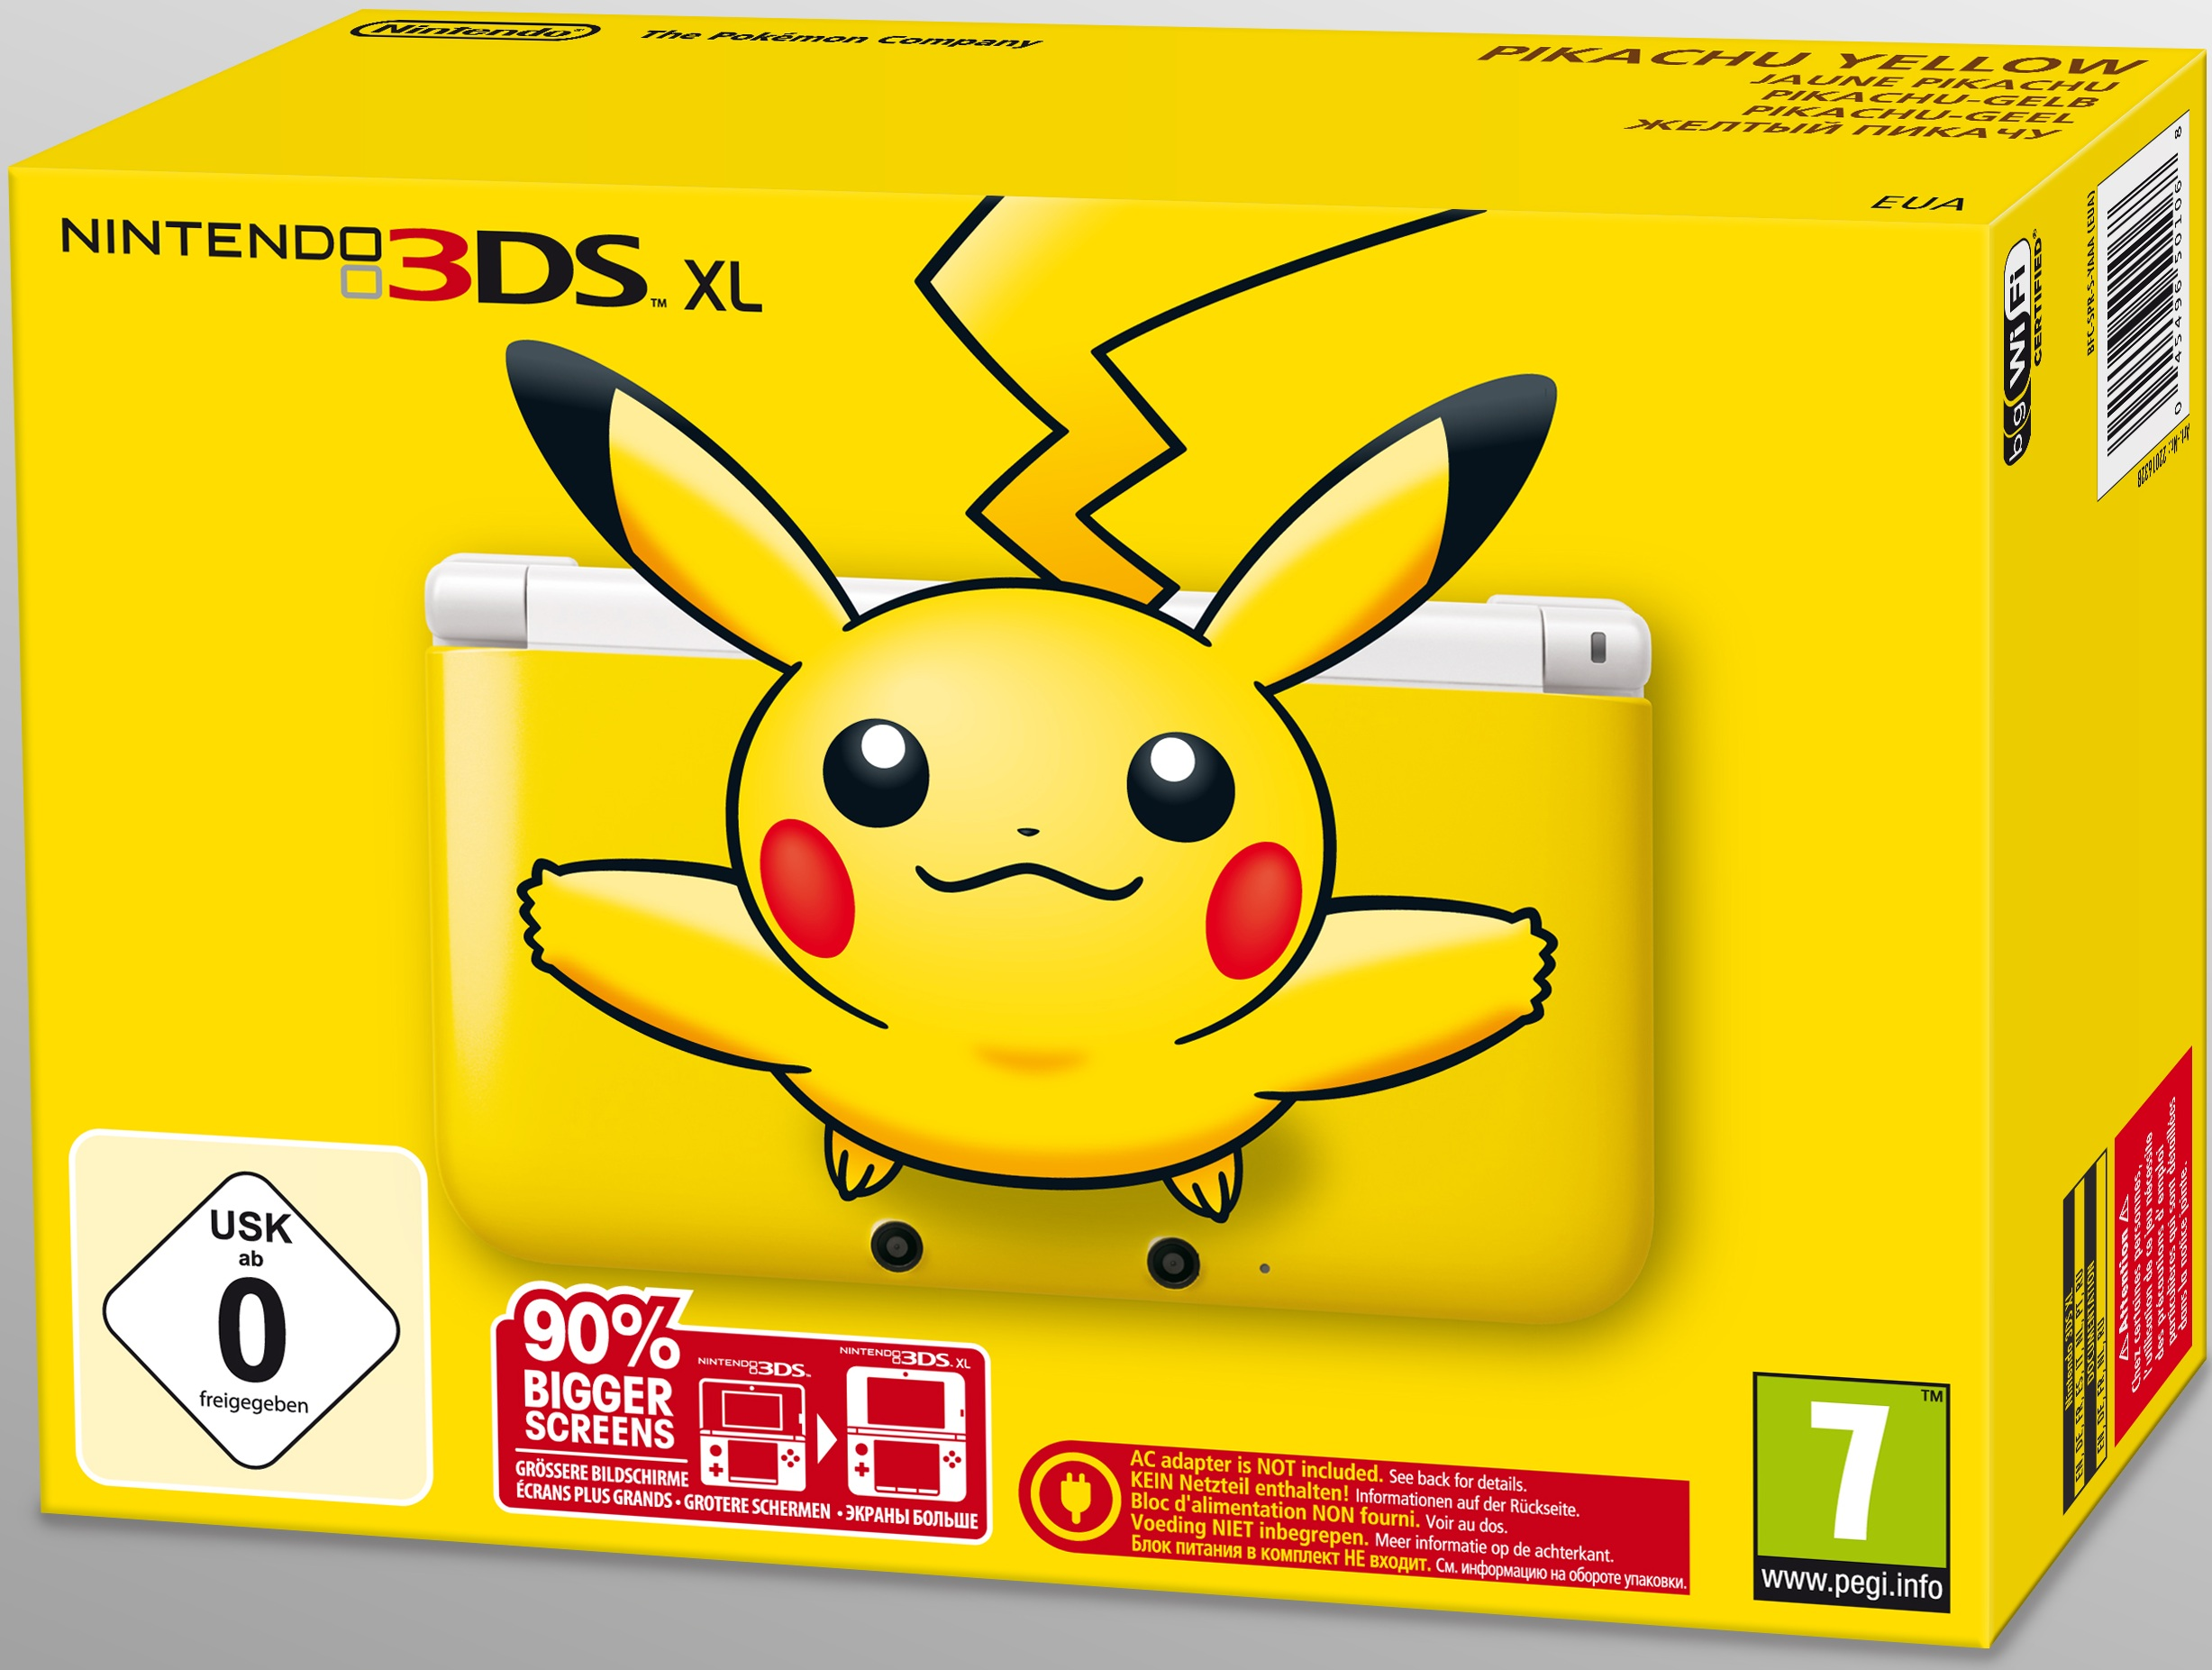 Legendary pok mon pikachu 3ds xl confirmed for north america for Housse 3ds xl pokemon